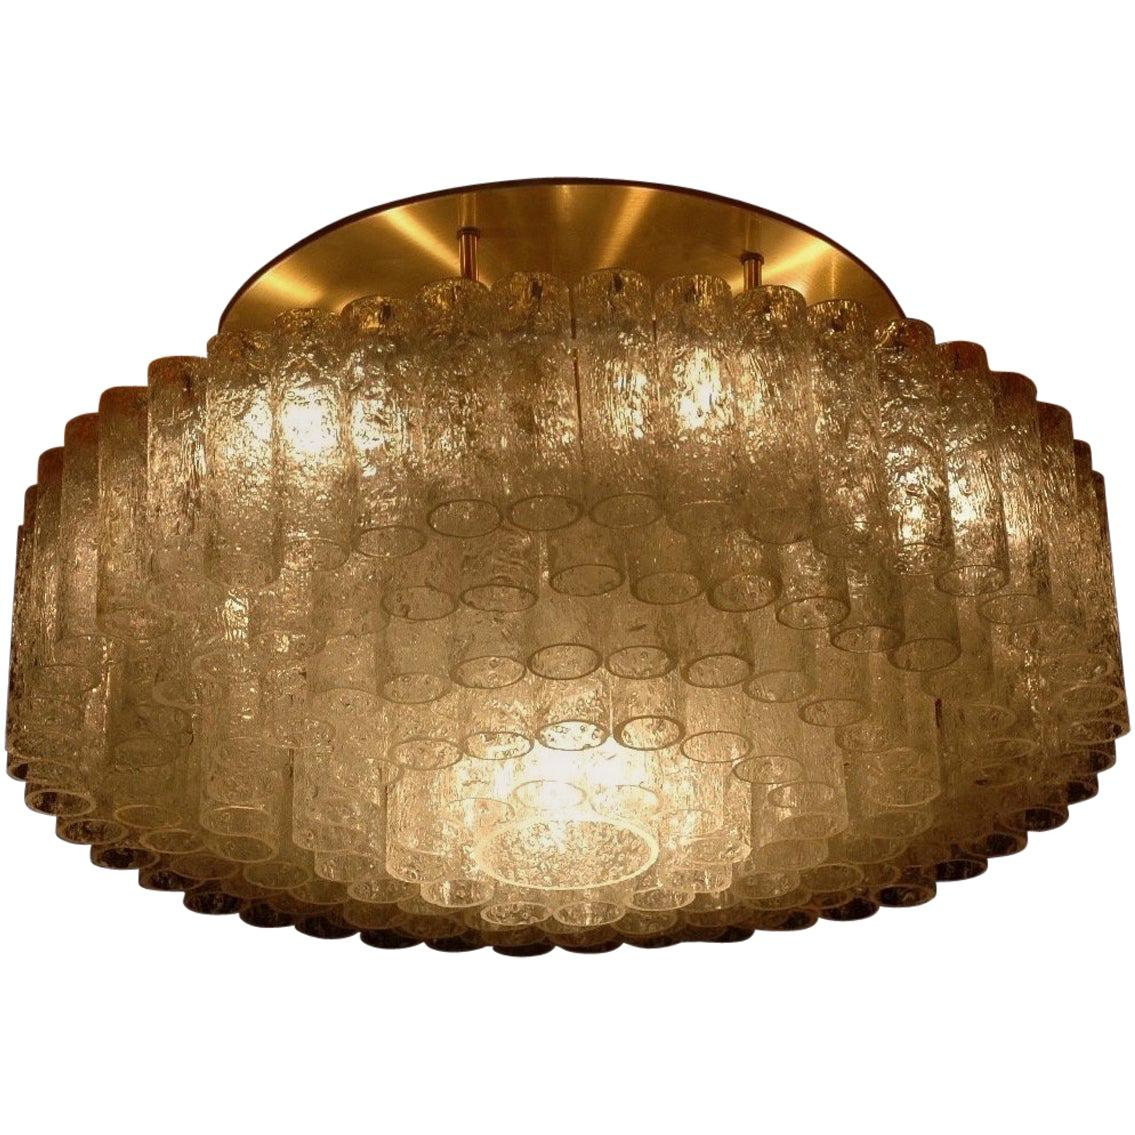 Huge Flush Mount Light Fixture by Doria, Germany, a Pair of 2 Available